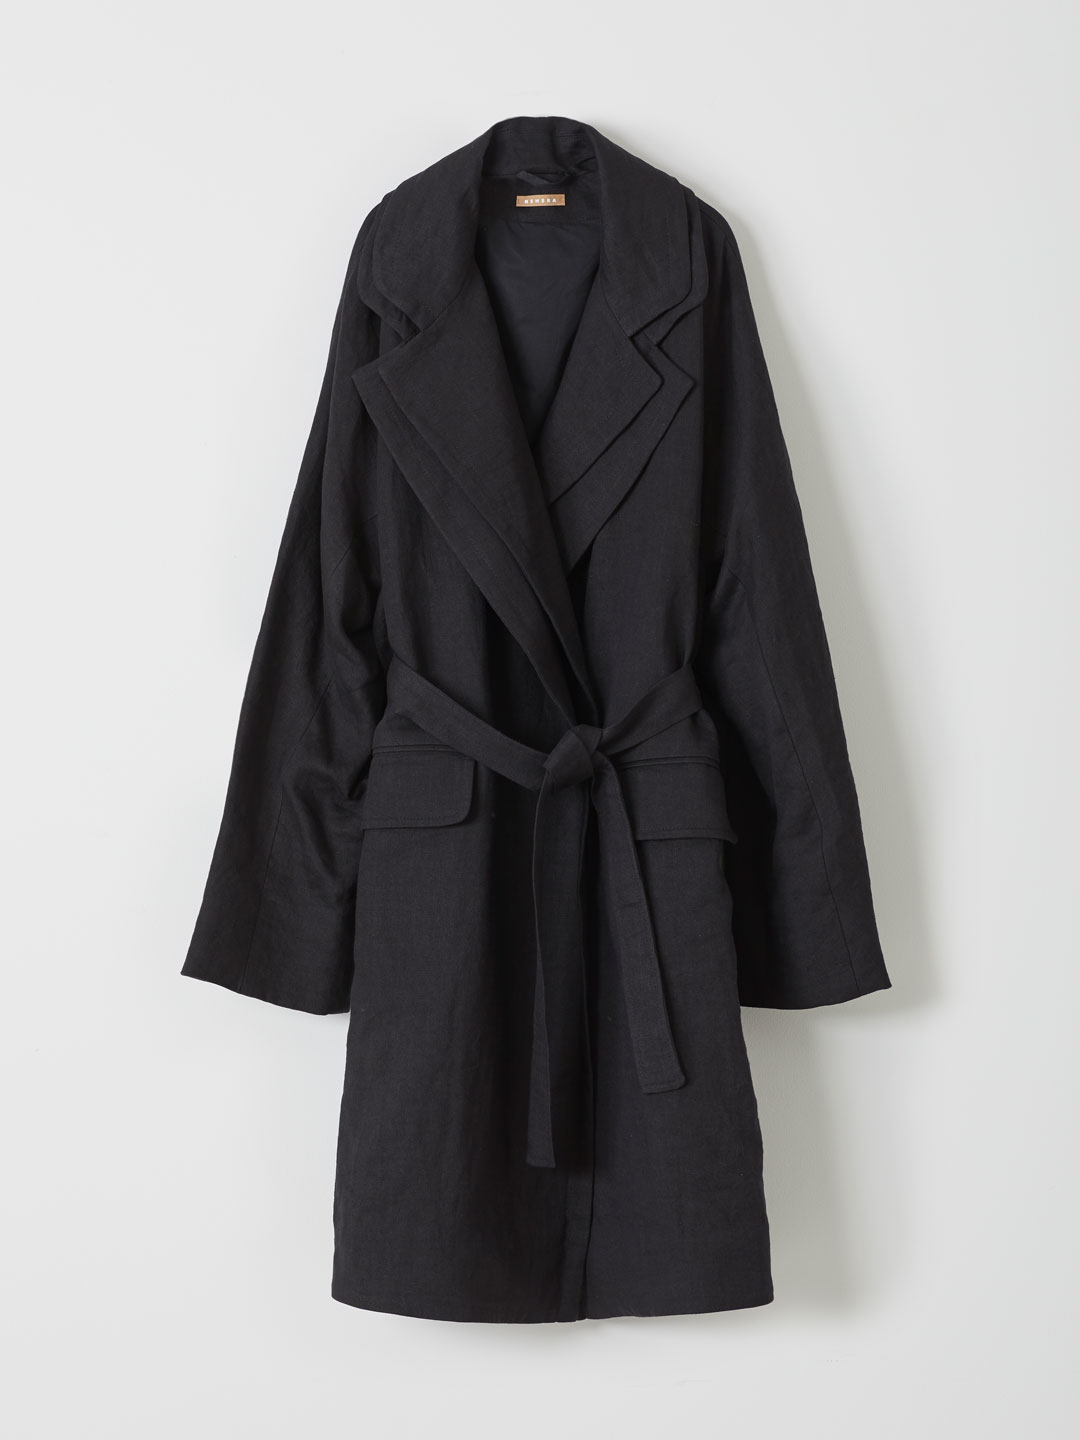 Linen Wool Blend Coat - Black